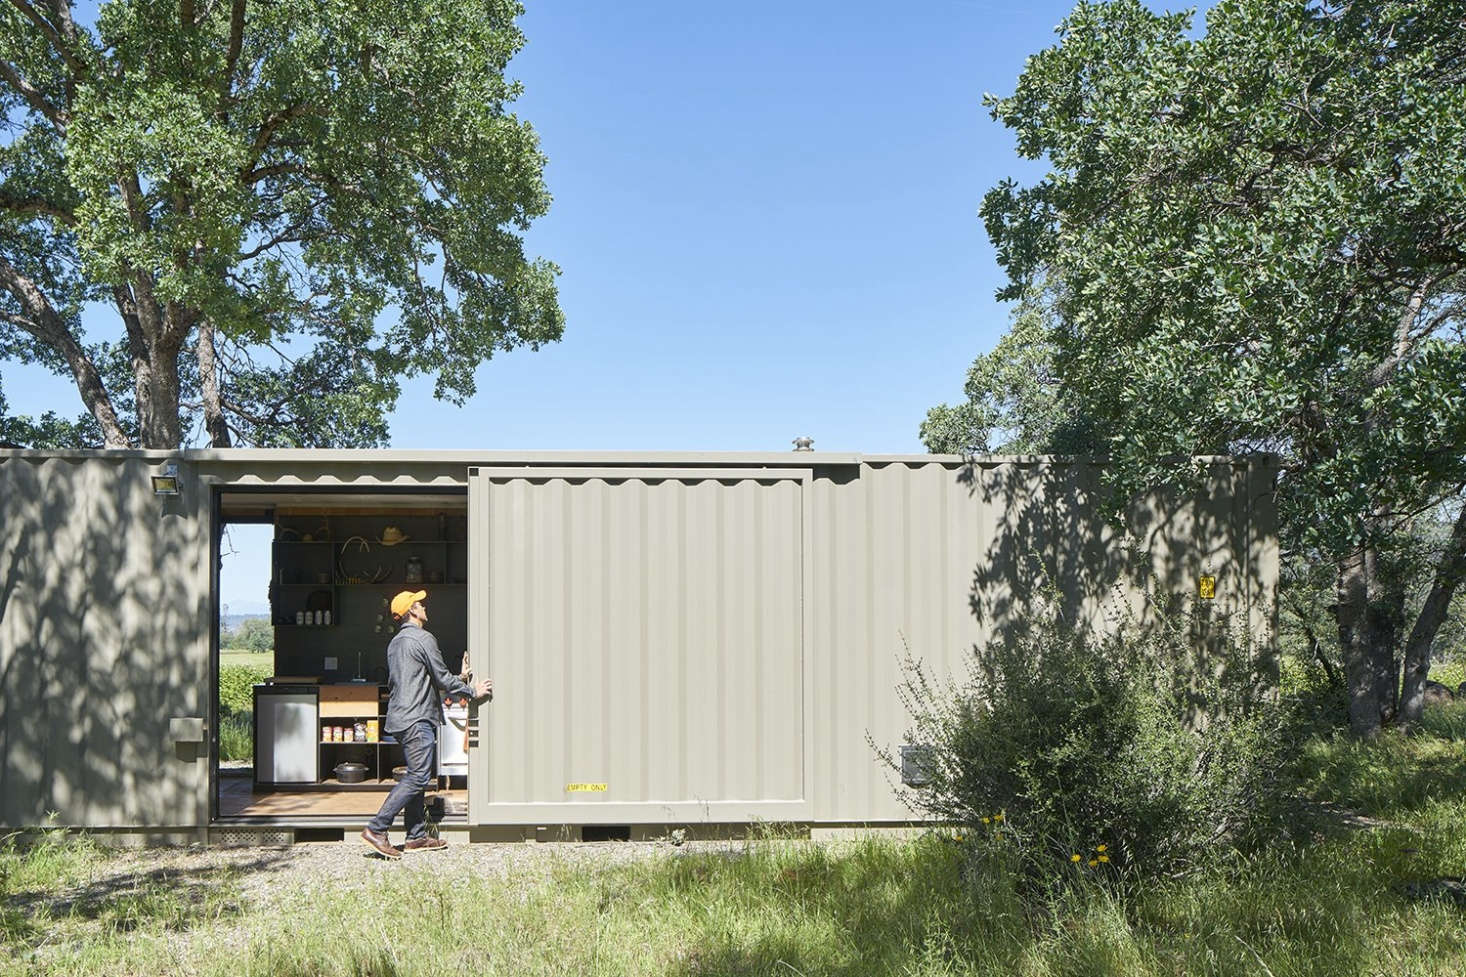 Architect David Yama of Yamamar Design turned a 40-foot highboy shipping container into a compact cabin located in the middle of a thousand acres of land near Mount Lassen in Manton, California. Photograph courtesy of Yamamar Design.